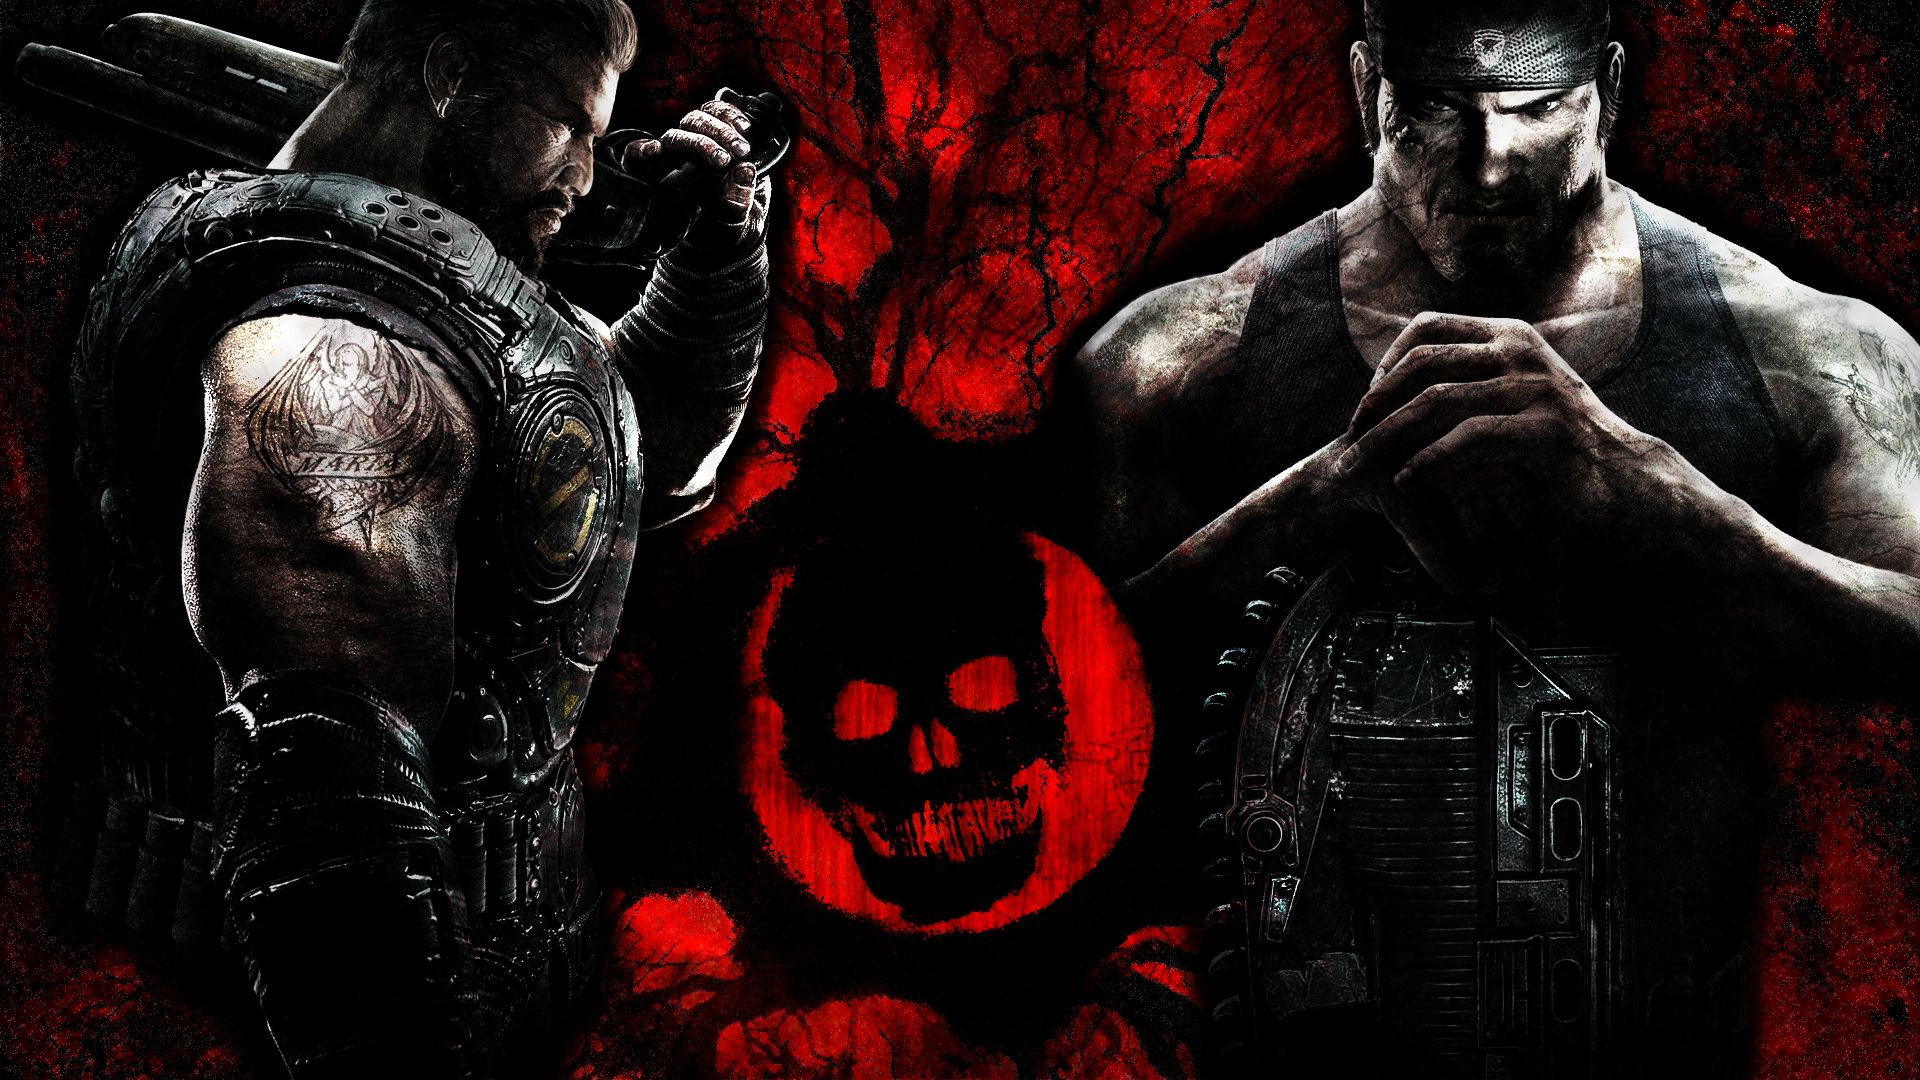 Gears of War Num.1 by ~chamillitarysk8r on deviantART